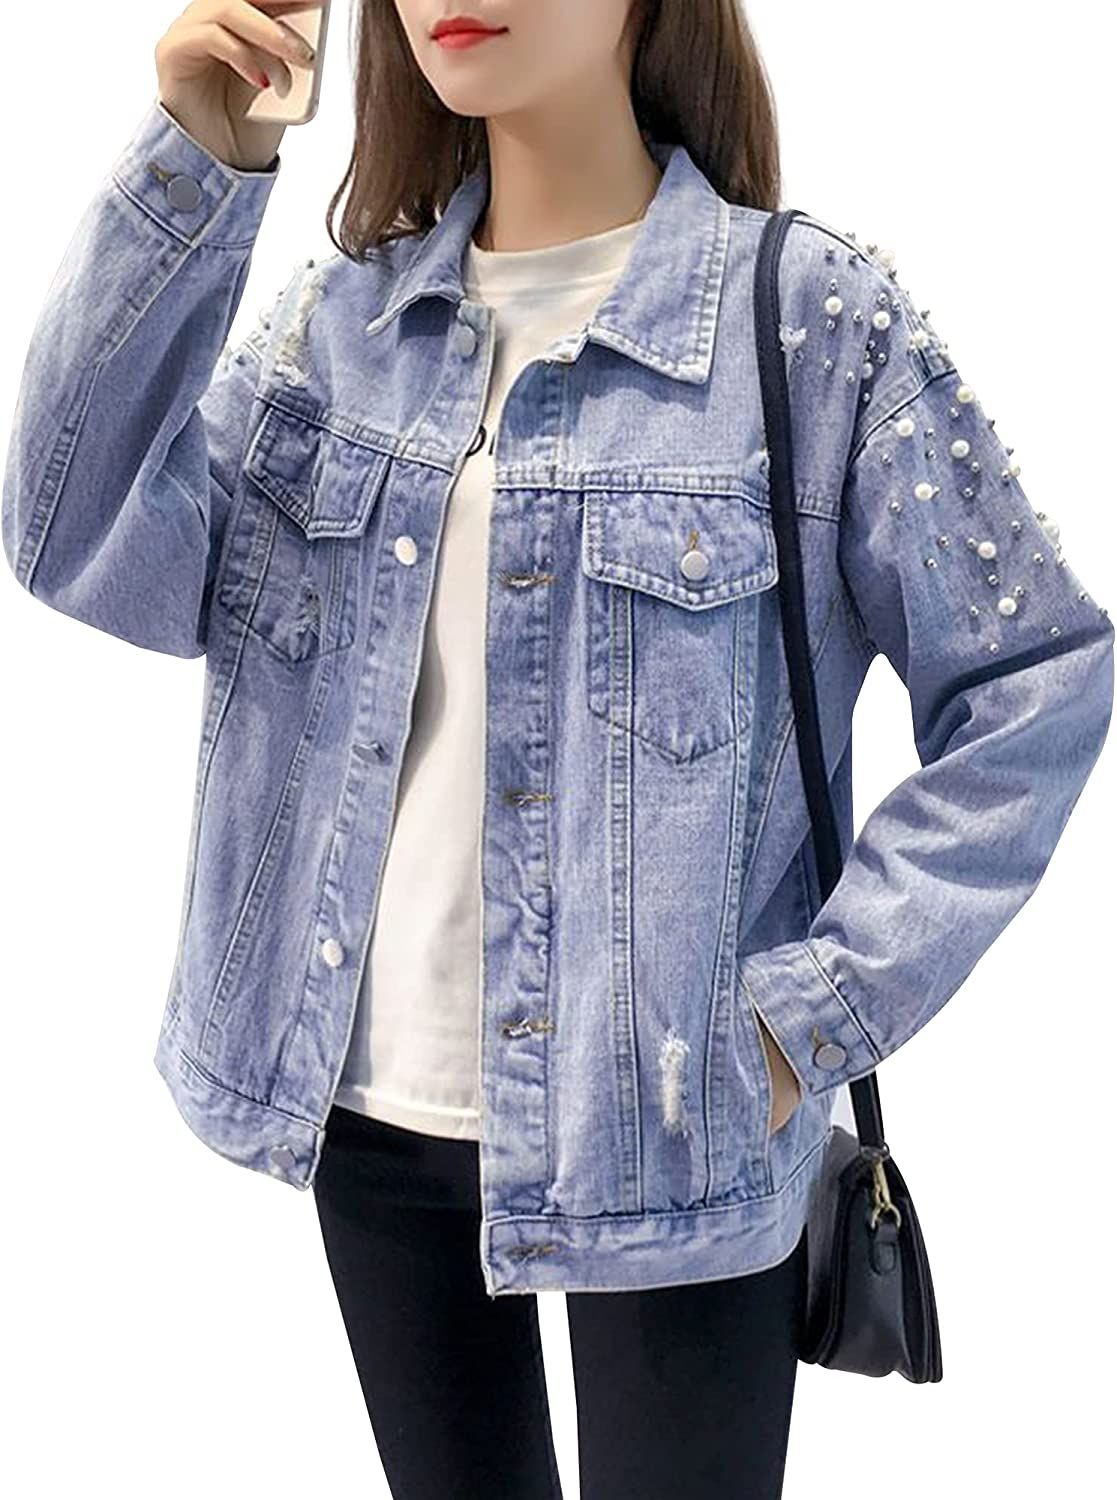 Hixiaohe Women's Casual Loose Pearls Beading Denim Jackets Button Down Ripped Jean Coat